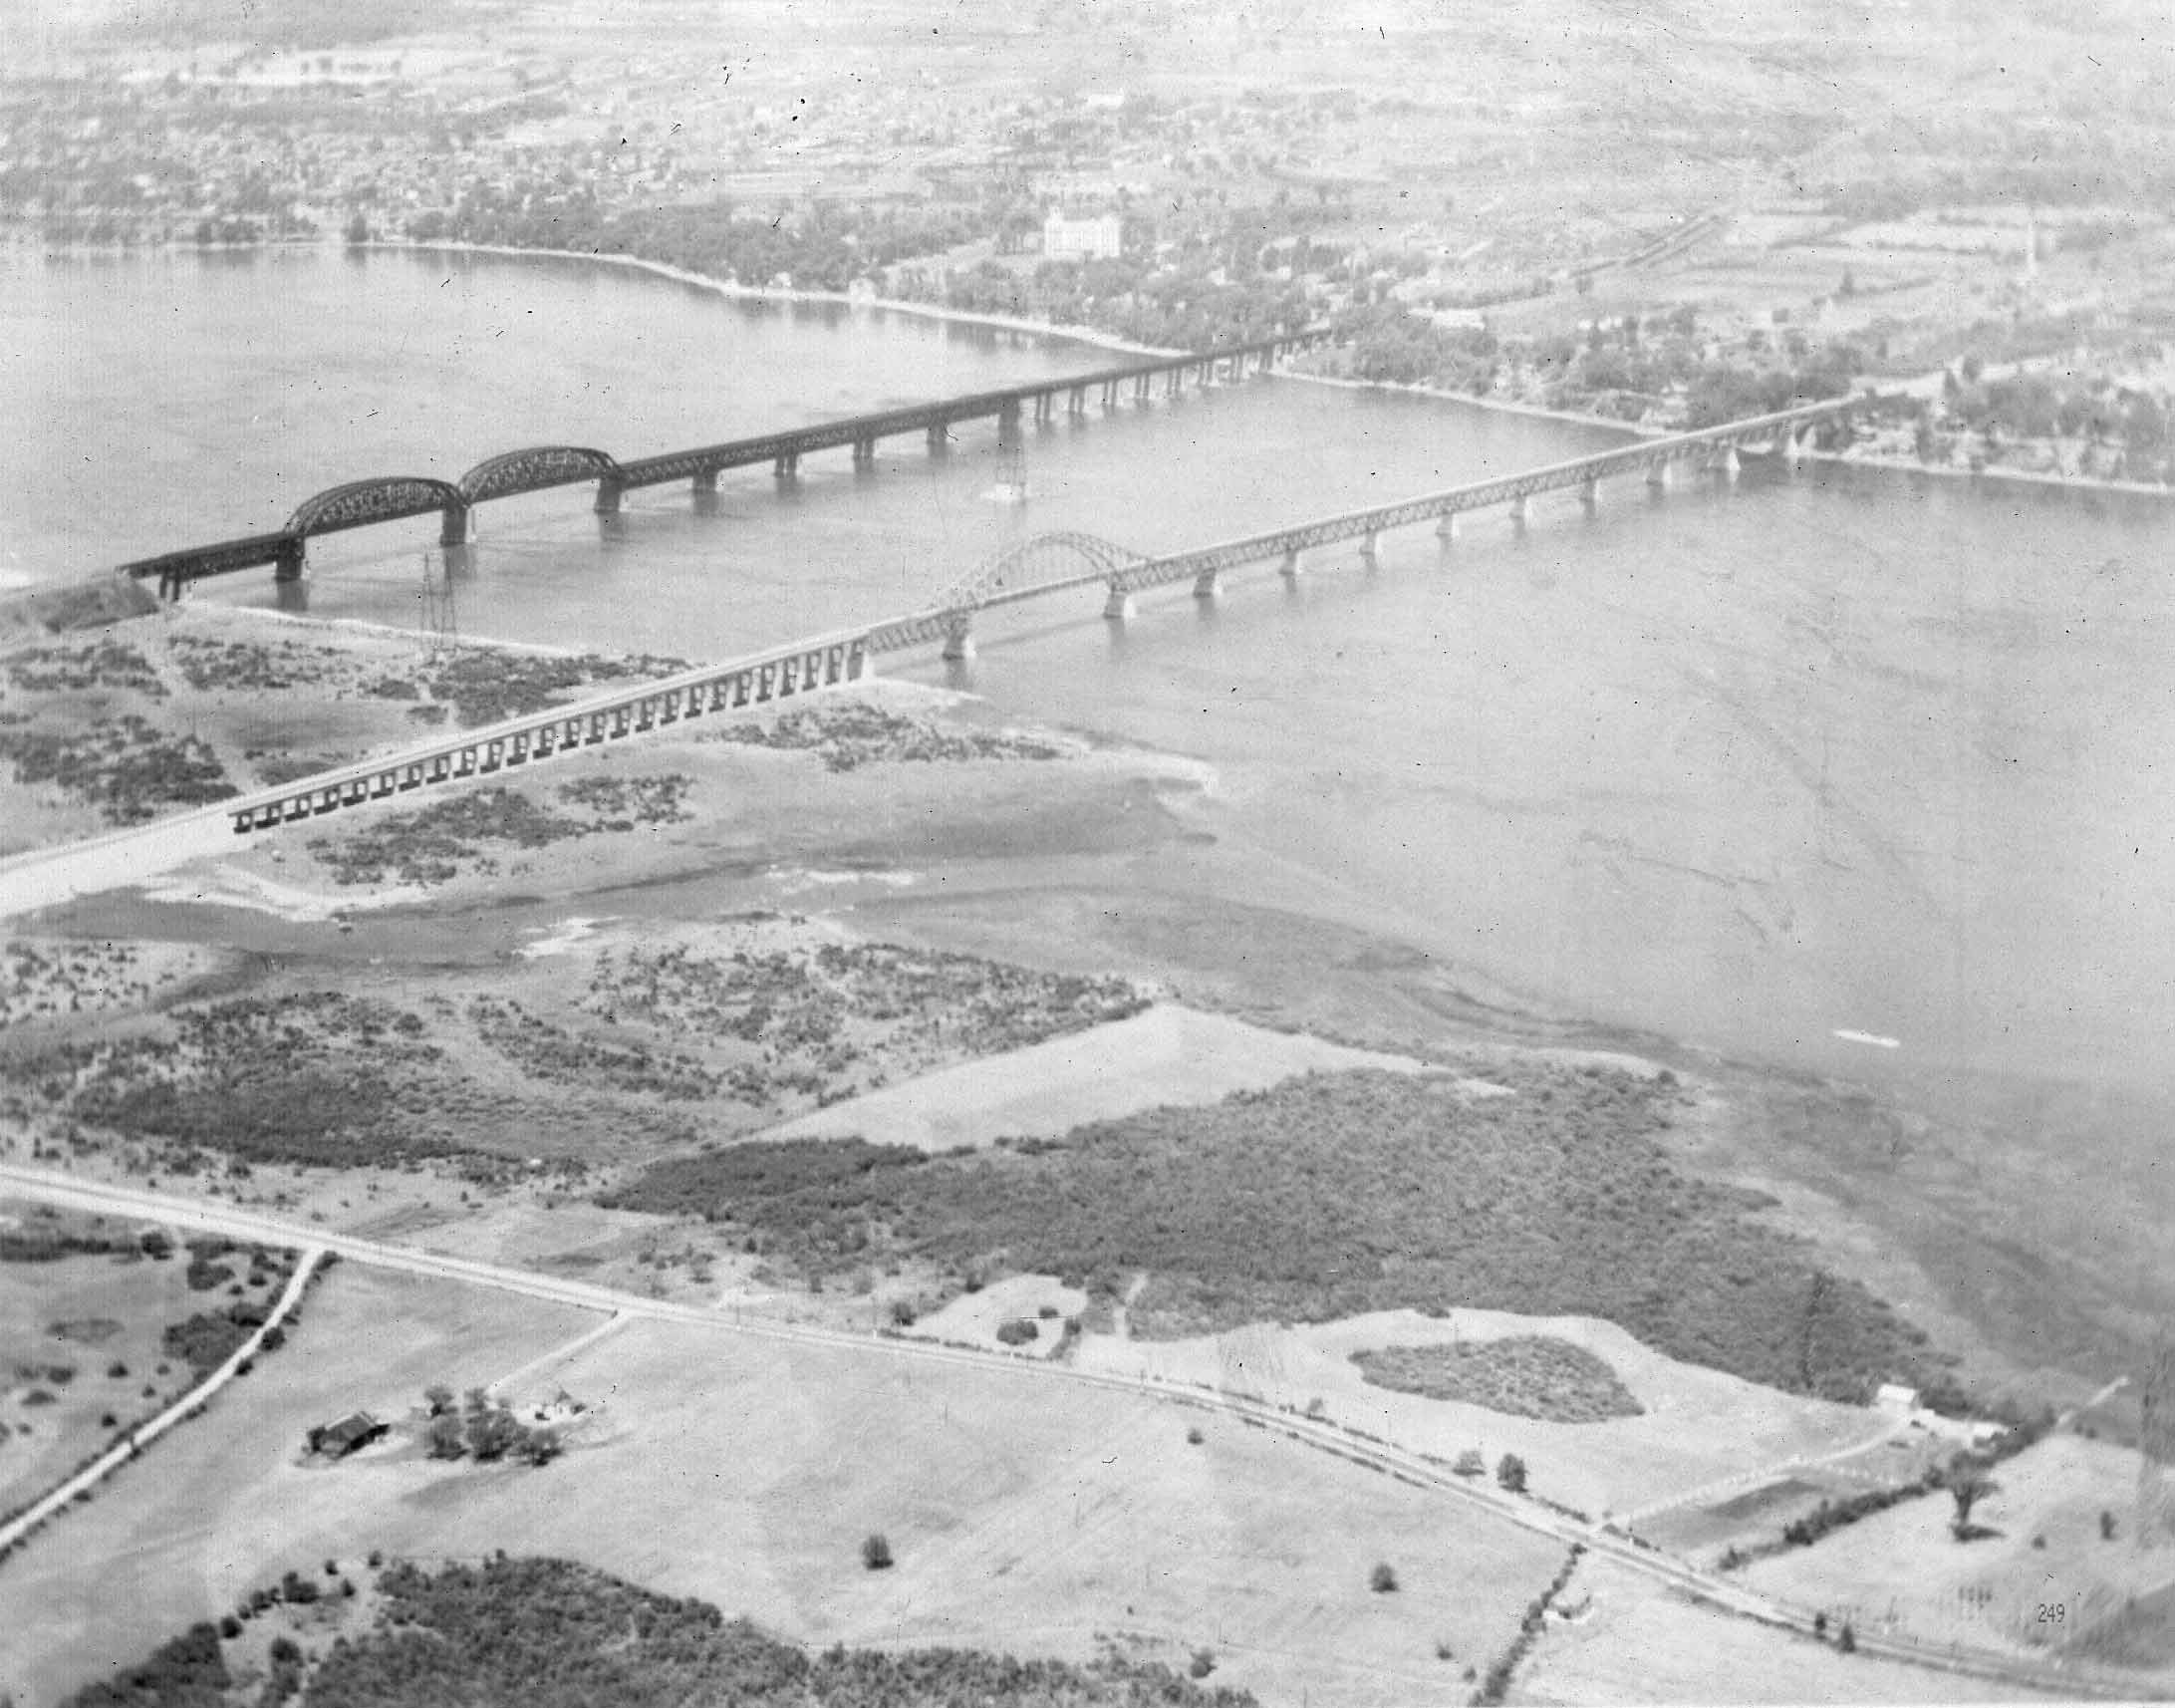 A view of the Honoré Mercier Bridge and Kahnawake, Que., prior to the construction of the St. Lawrence Seaway. (The Kahnawake Photo Archive/ Kanien'keháka Onkwawén:na Raotitióhkwa Language and Cultural Center)